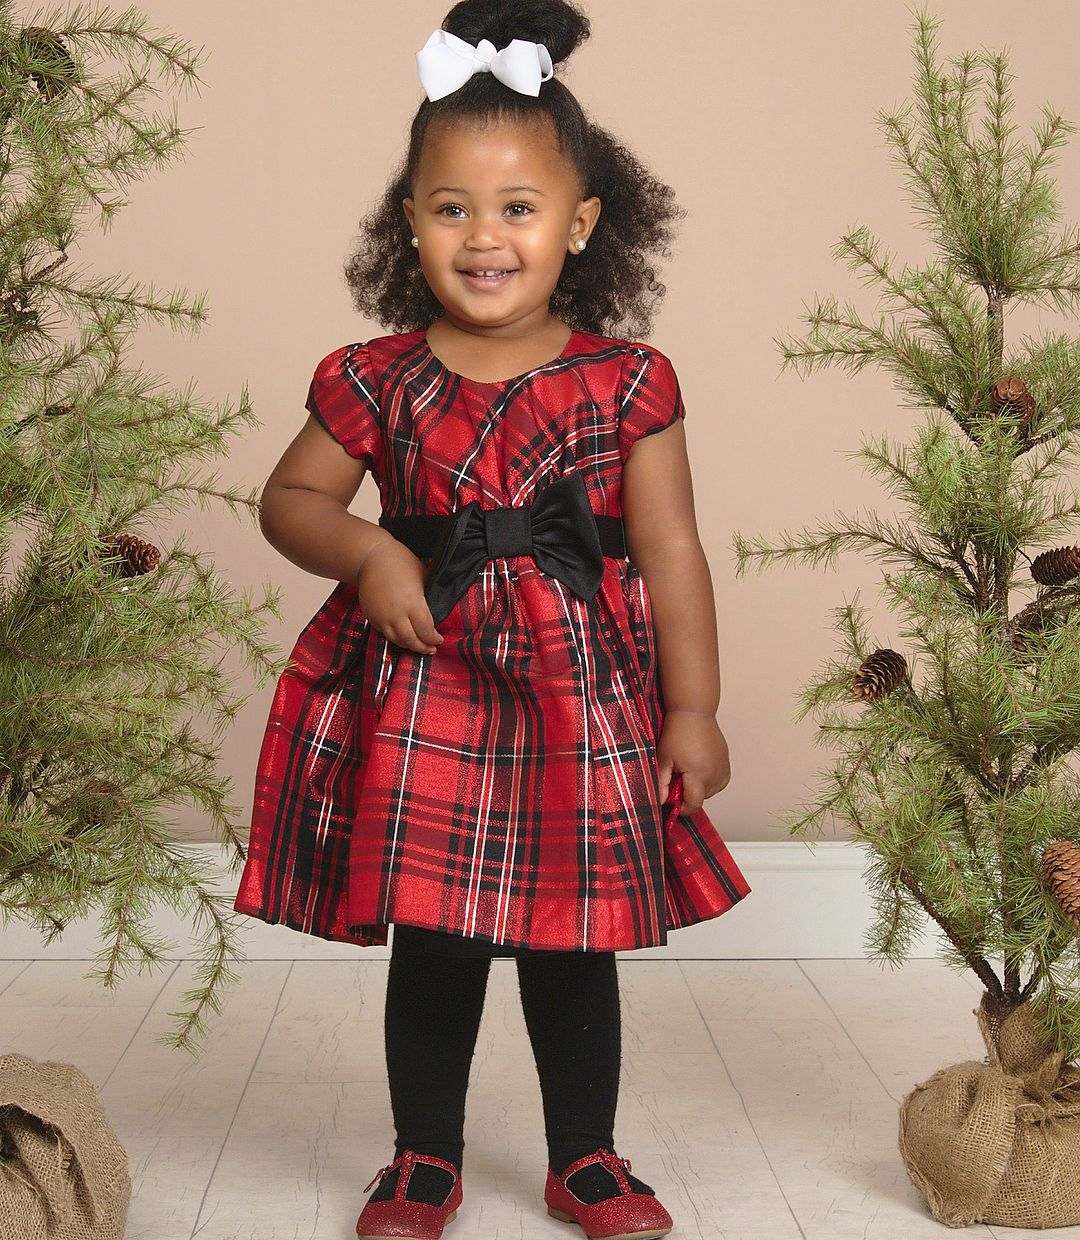 e44dd1eb Mia Isabella - 2 years ❤ Gorgeous baby girl in her adorable Christmas  holiday dress (17 Nov 2015)